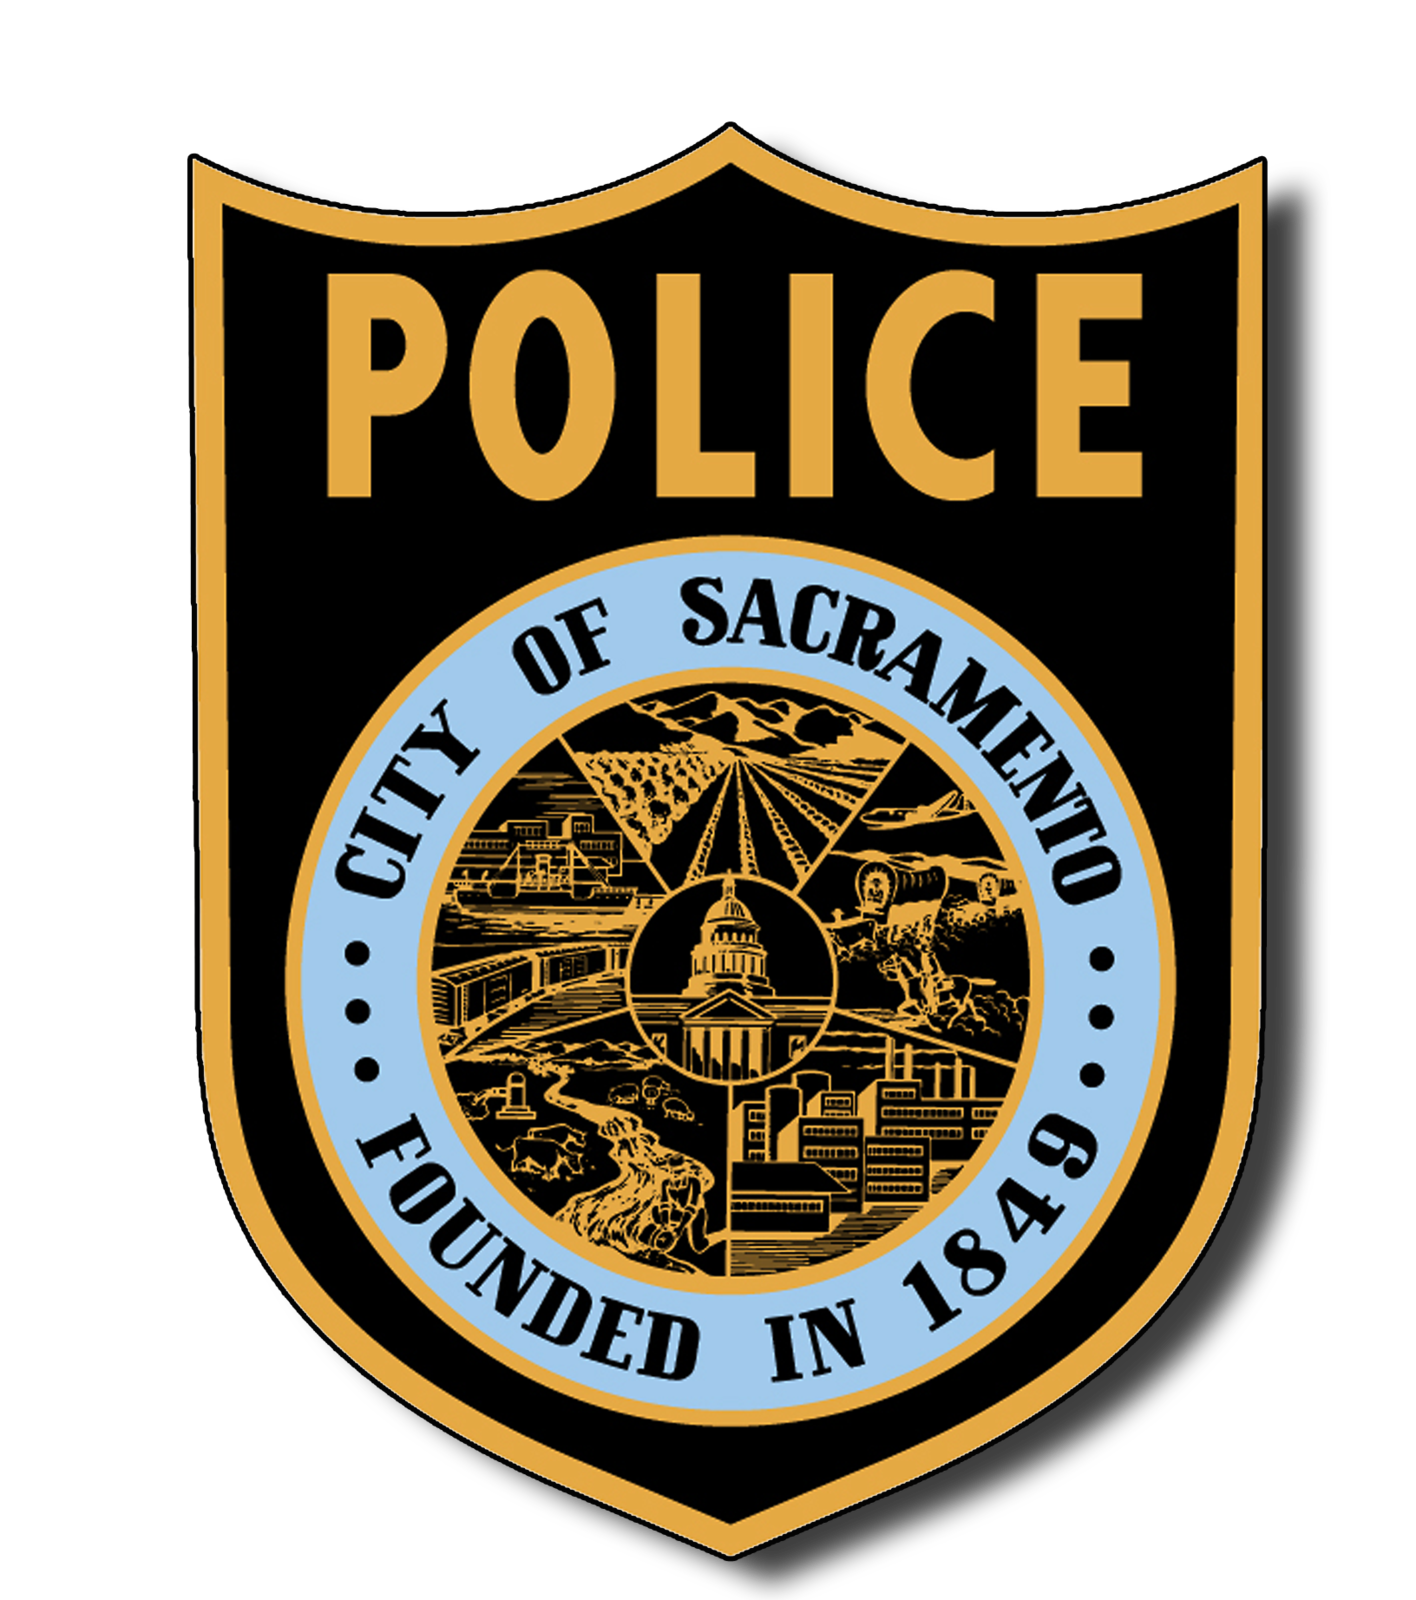 City of sac police.png